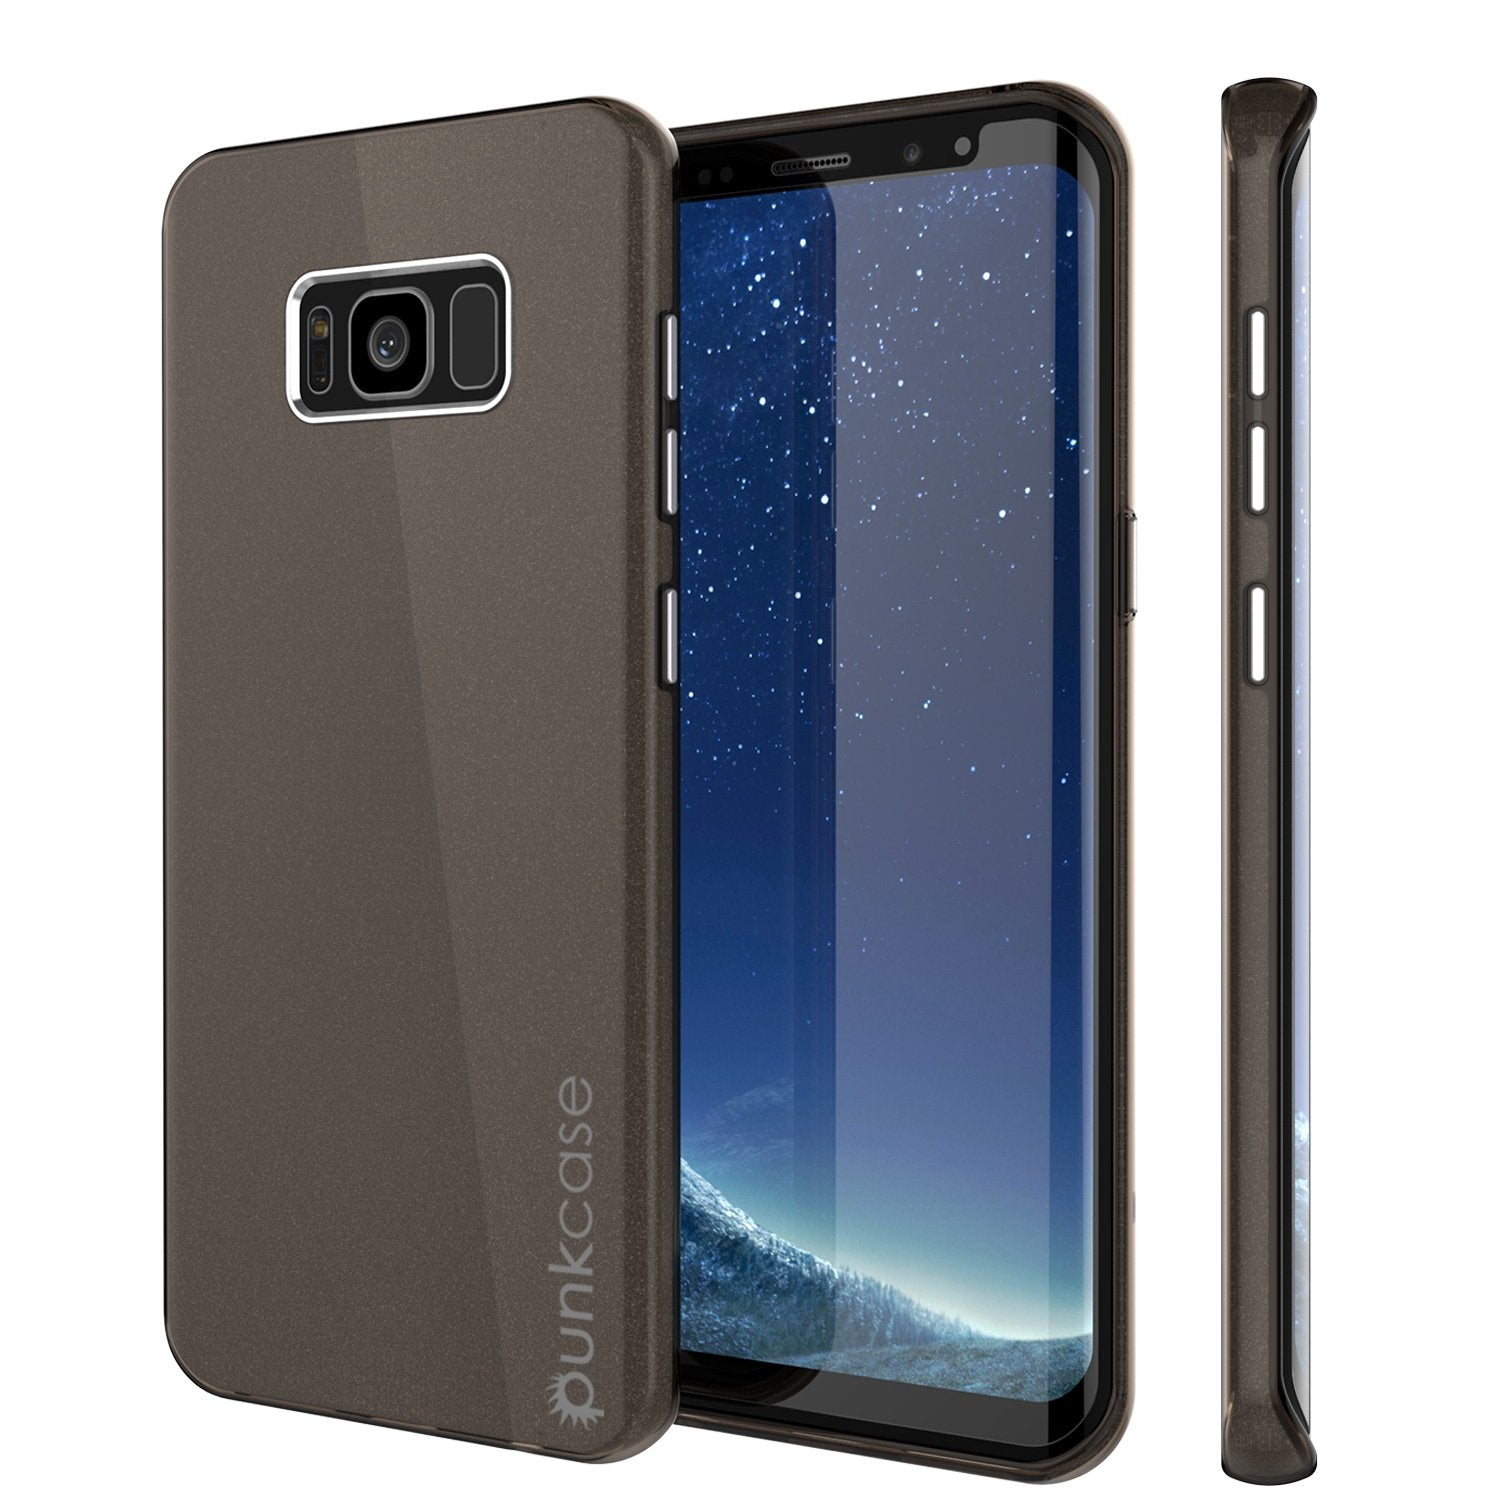 Galaxy S8 Case, Punkcase Galactic 2.0 Series Armor Black/Grey Cover